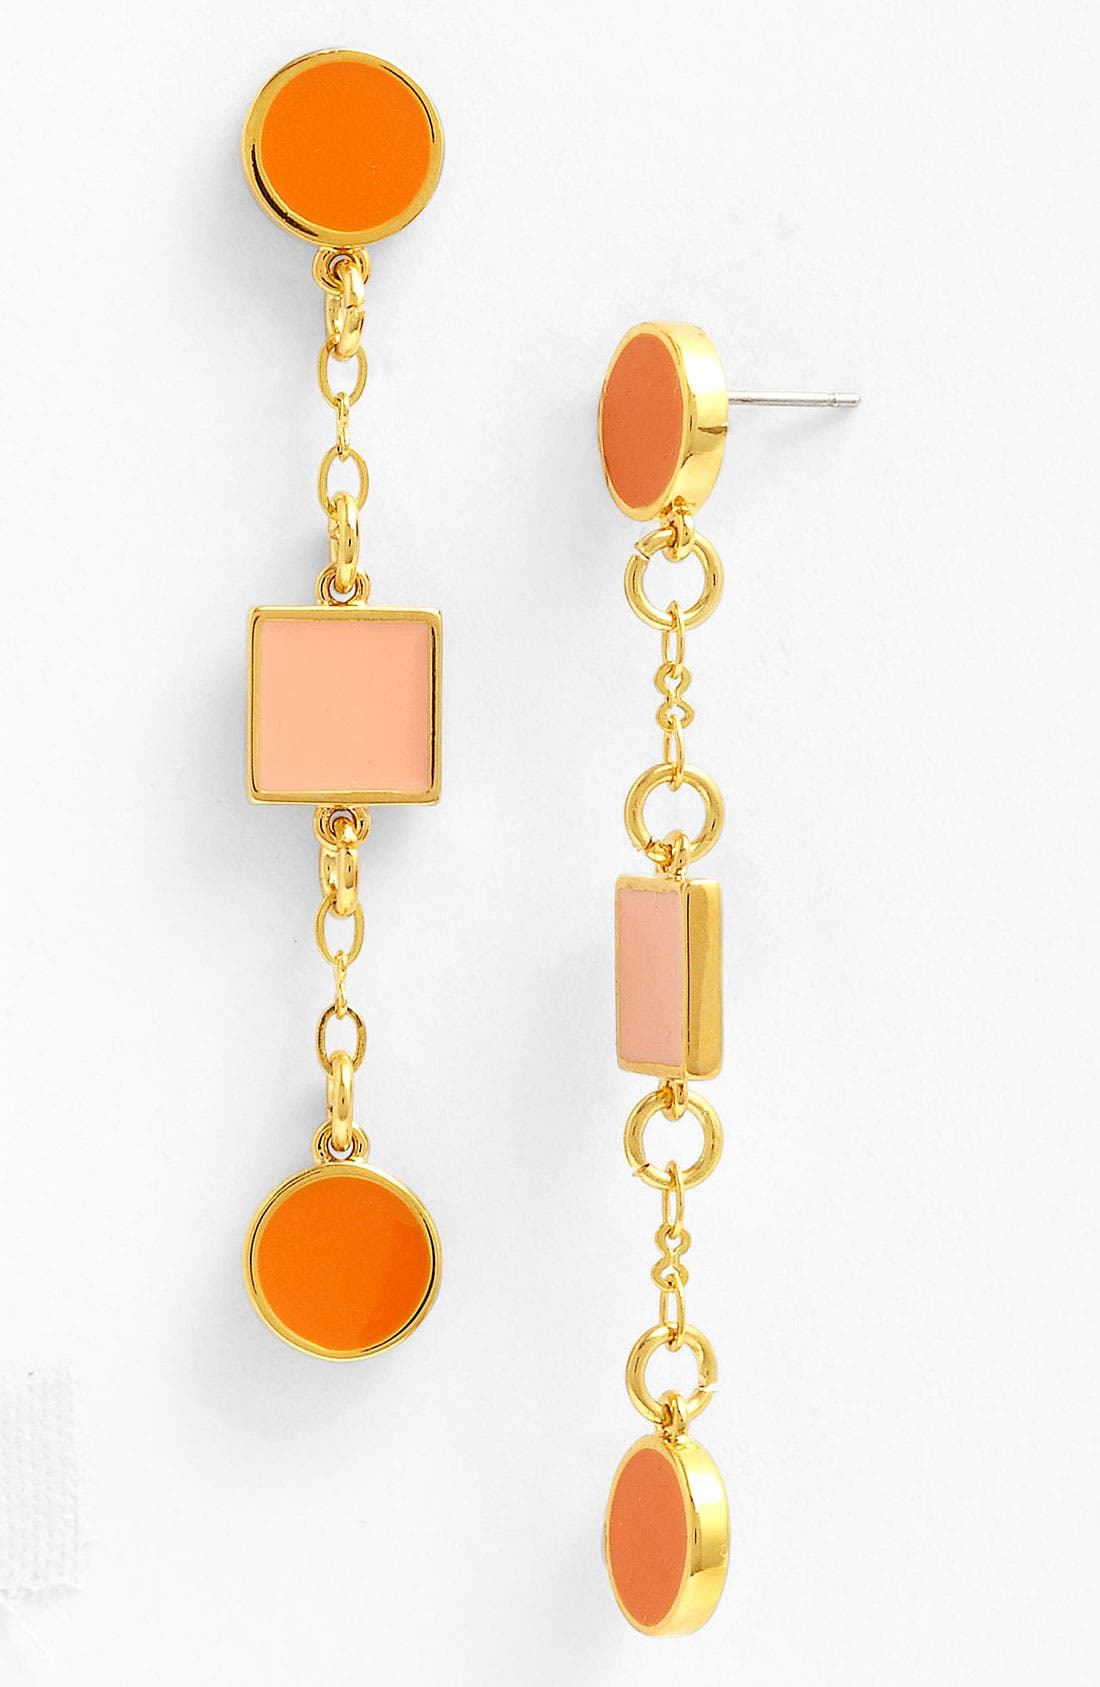 Alternate Image 1 Selected - Tory Burch 'Clemens' Linear Earrings